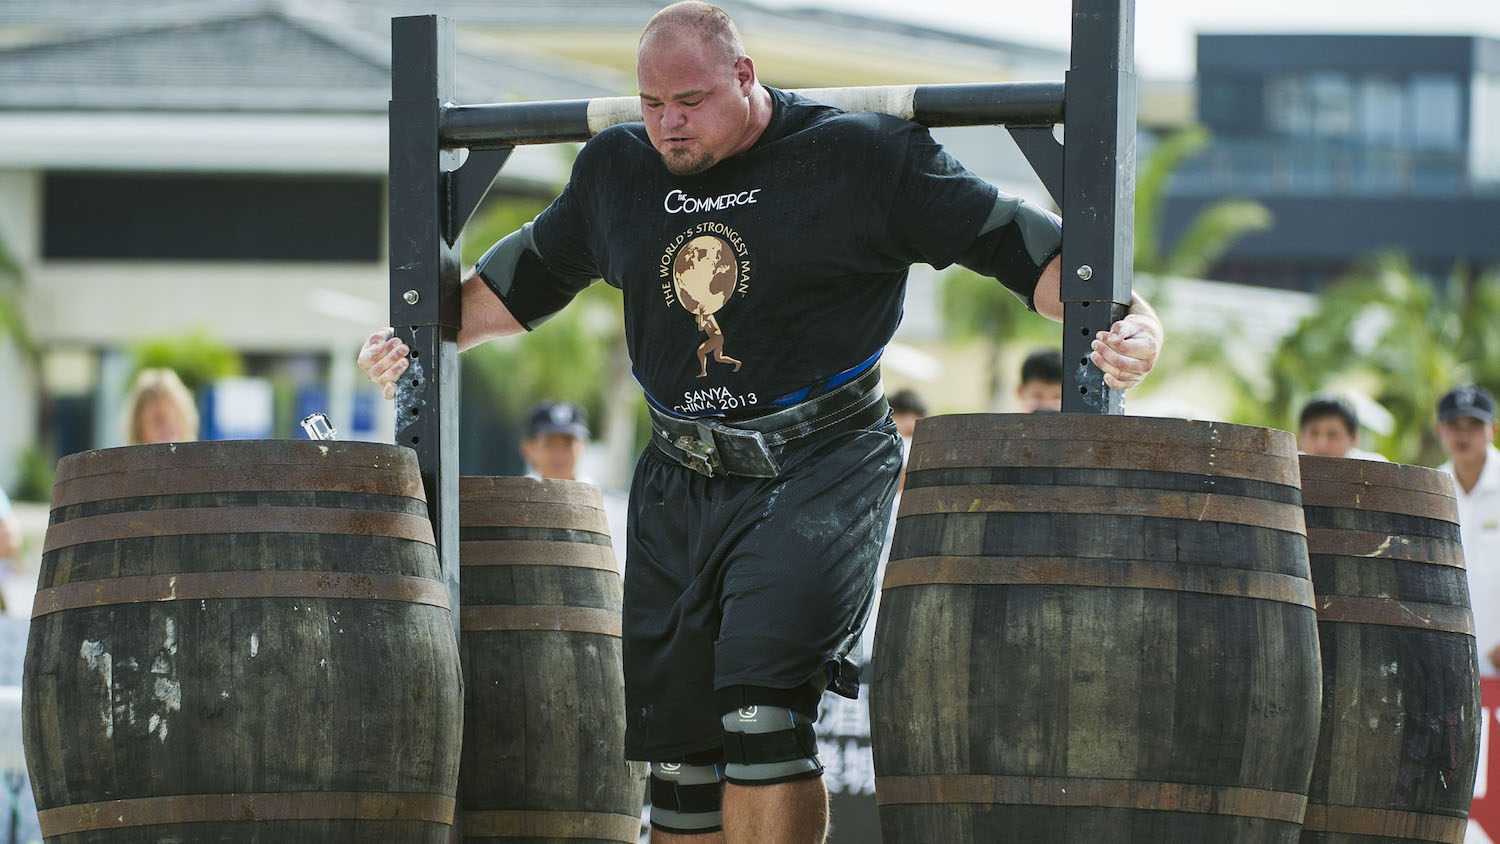 World's strongest man diet.